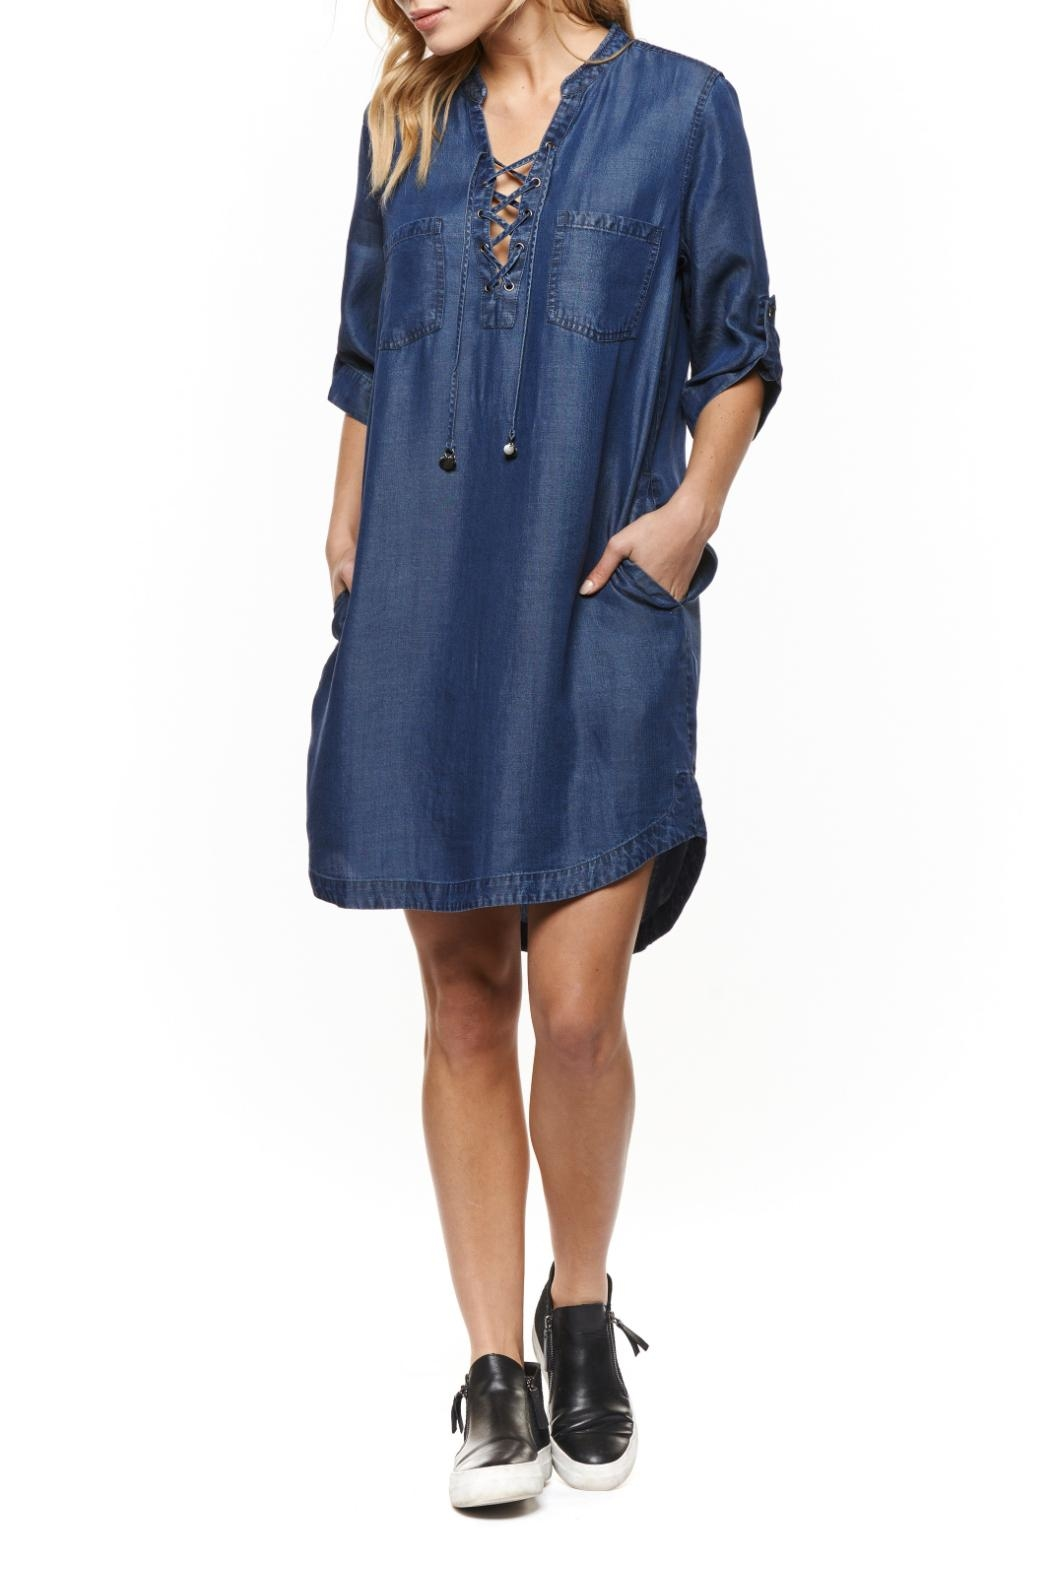 Dex Lace Up Tunic Top - Main Image